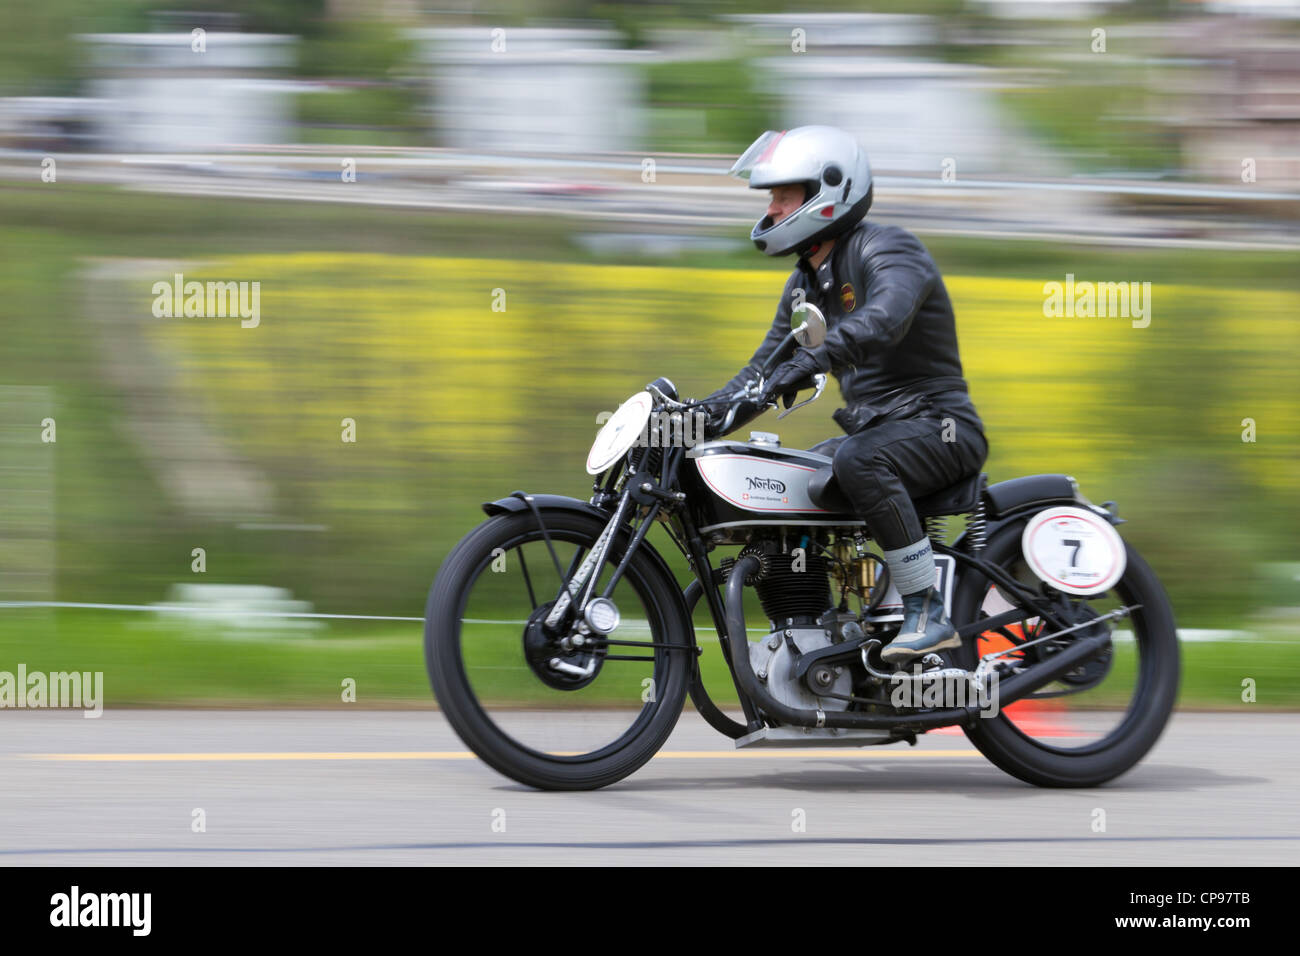 Vintage motorbike Norton Mod. 20 from 1932 on display at Grand Prix in Mutschellen, SUI on April 29, 2012. - Stock Image